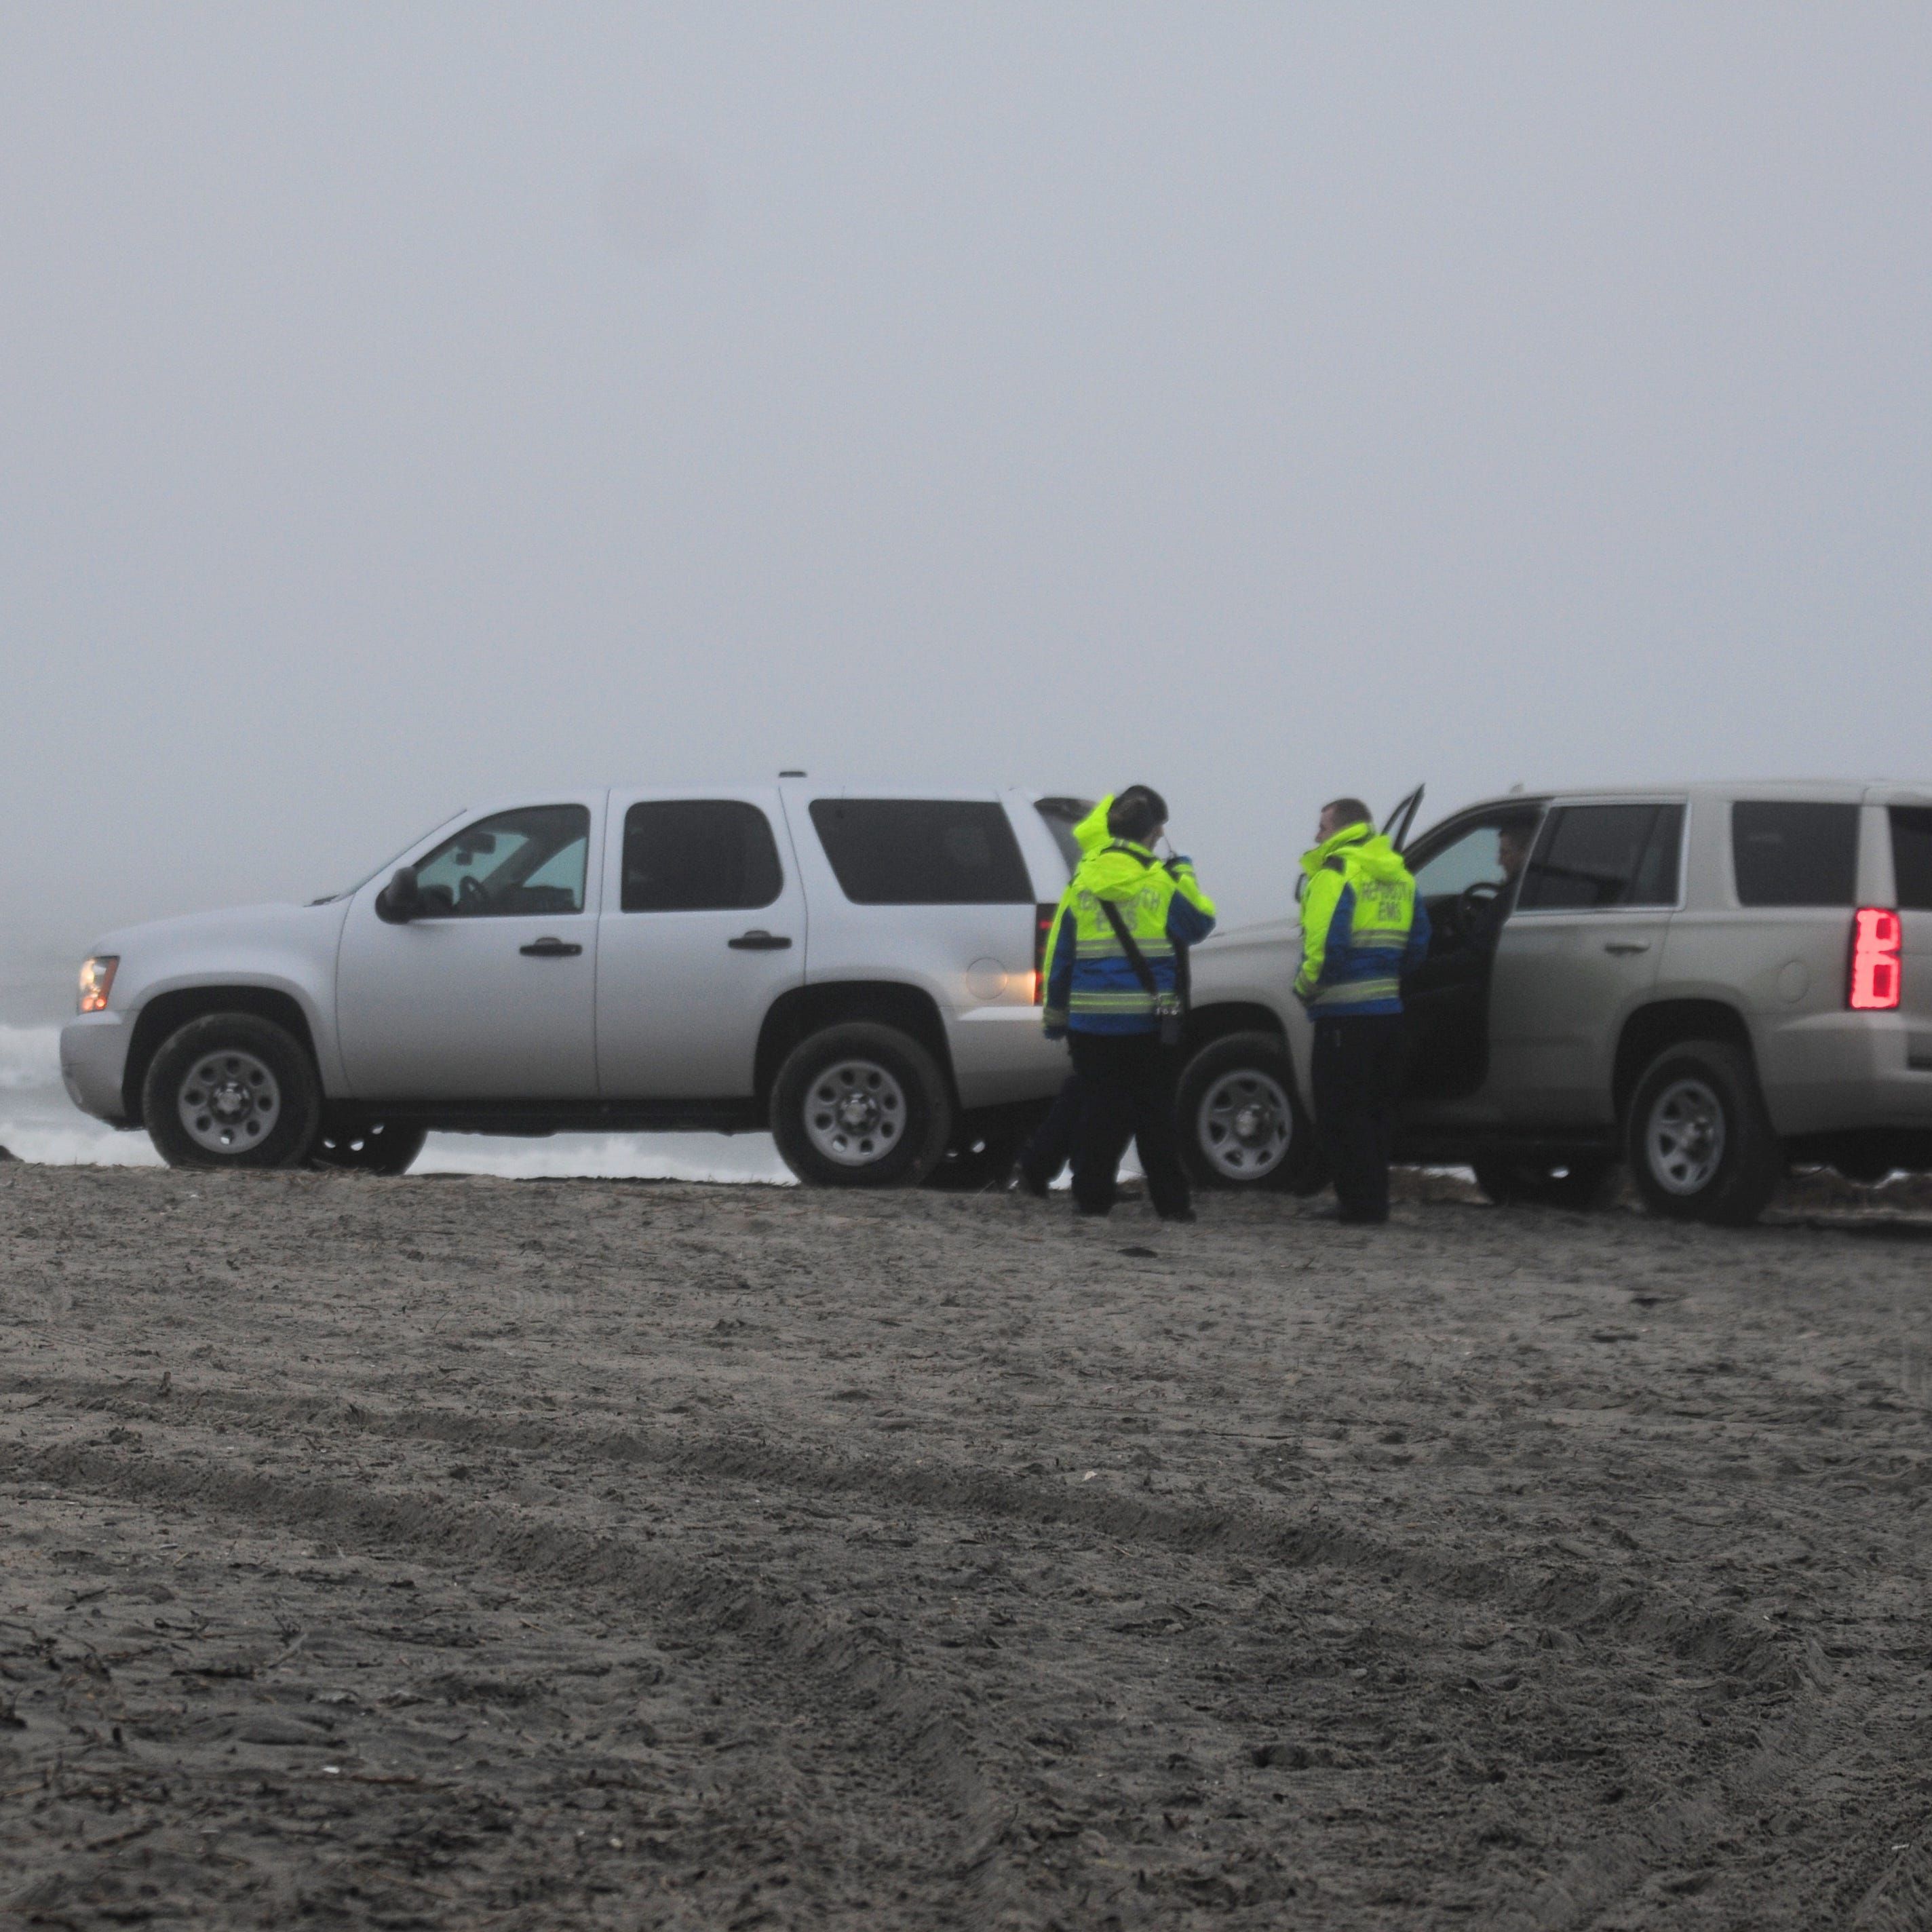 Police ID Lewes woman, 48, as body in water near Indian River Inlet bridge